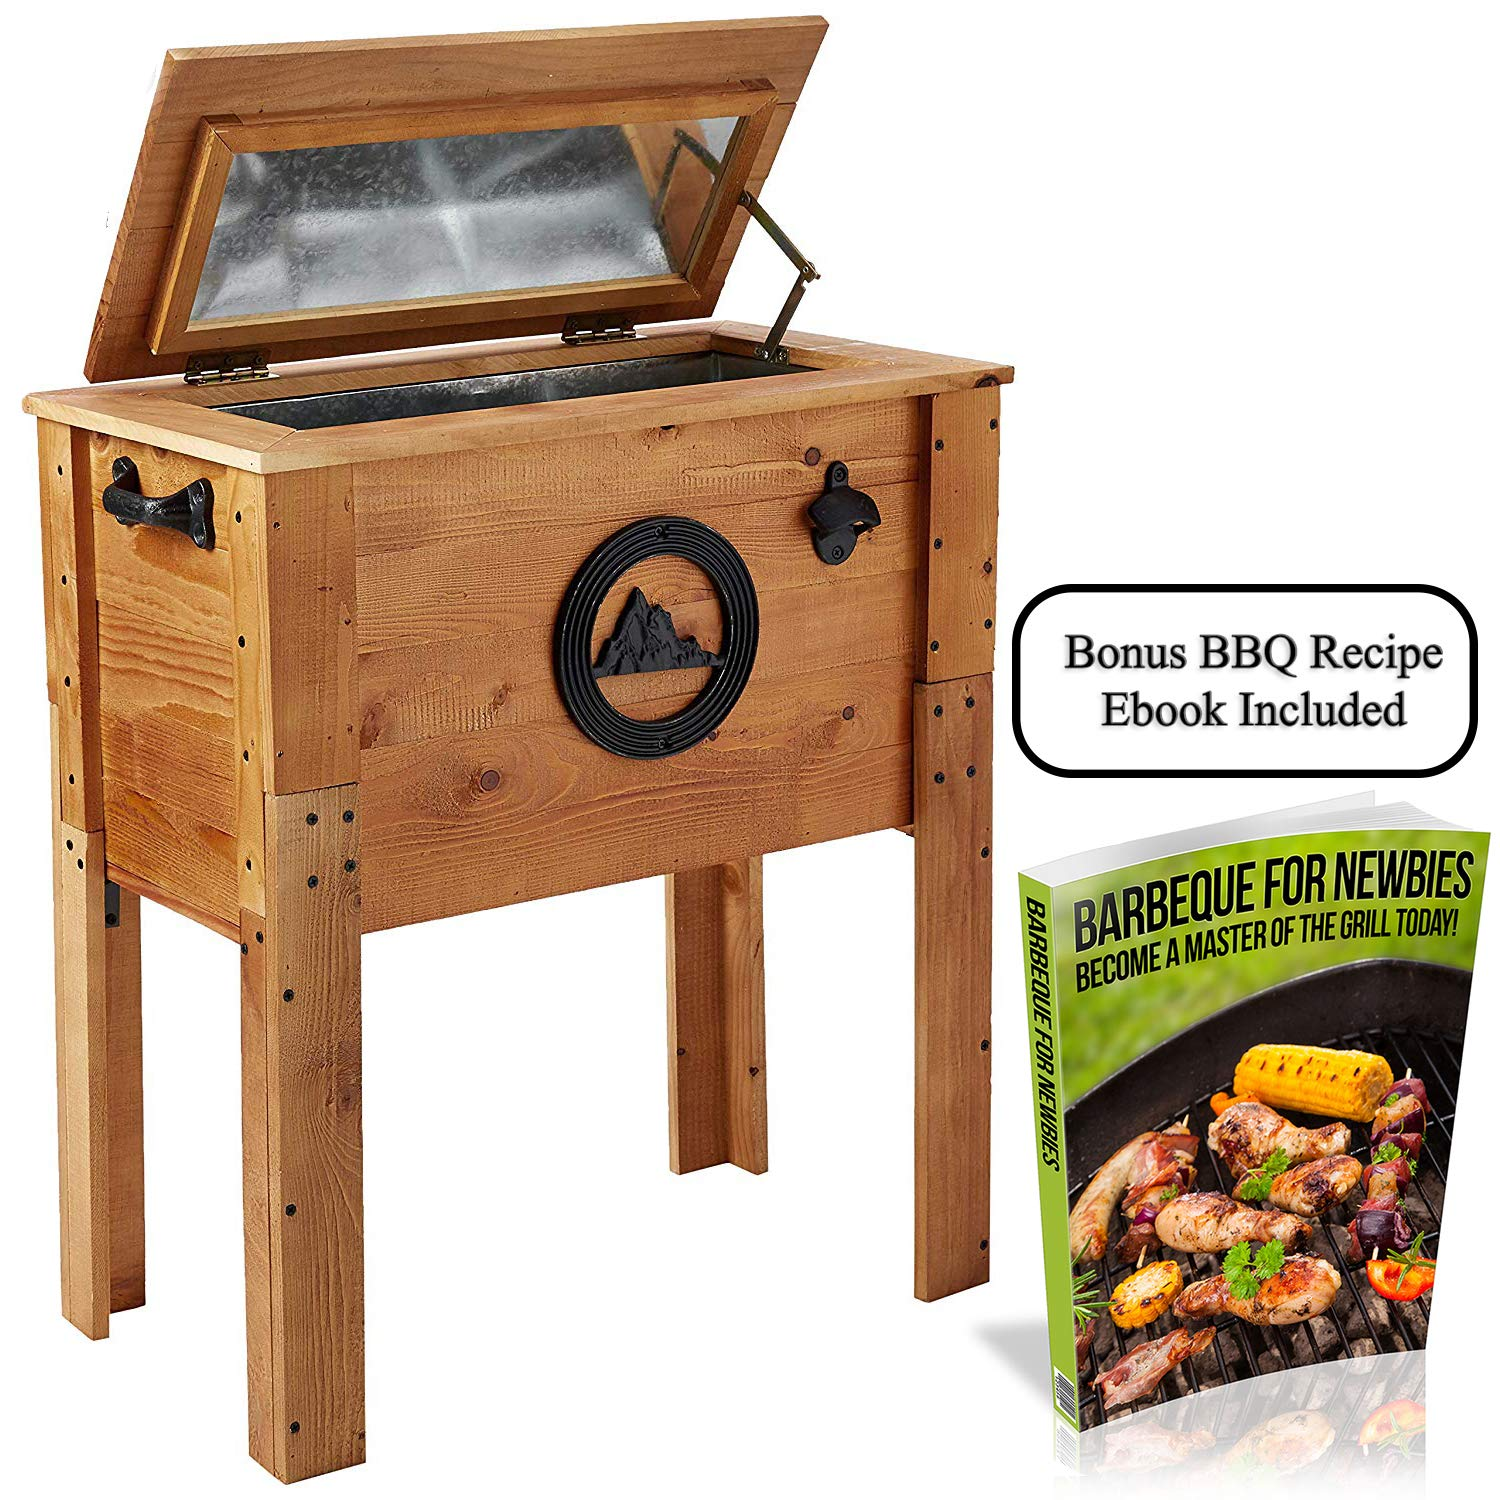 Backyard Expressions - Standing 45 Quart Wooden Outdoor Patio Cooler - Free BBQ Recipe Ebook to Help with Party Meal Planning - Among The Best Gifts for Dad or Mom! by BACKYARD EXPRESSIONS PATIO · HOME · GARDEN